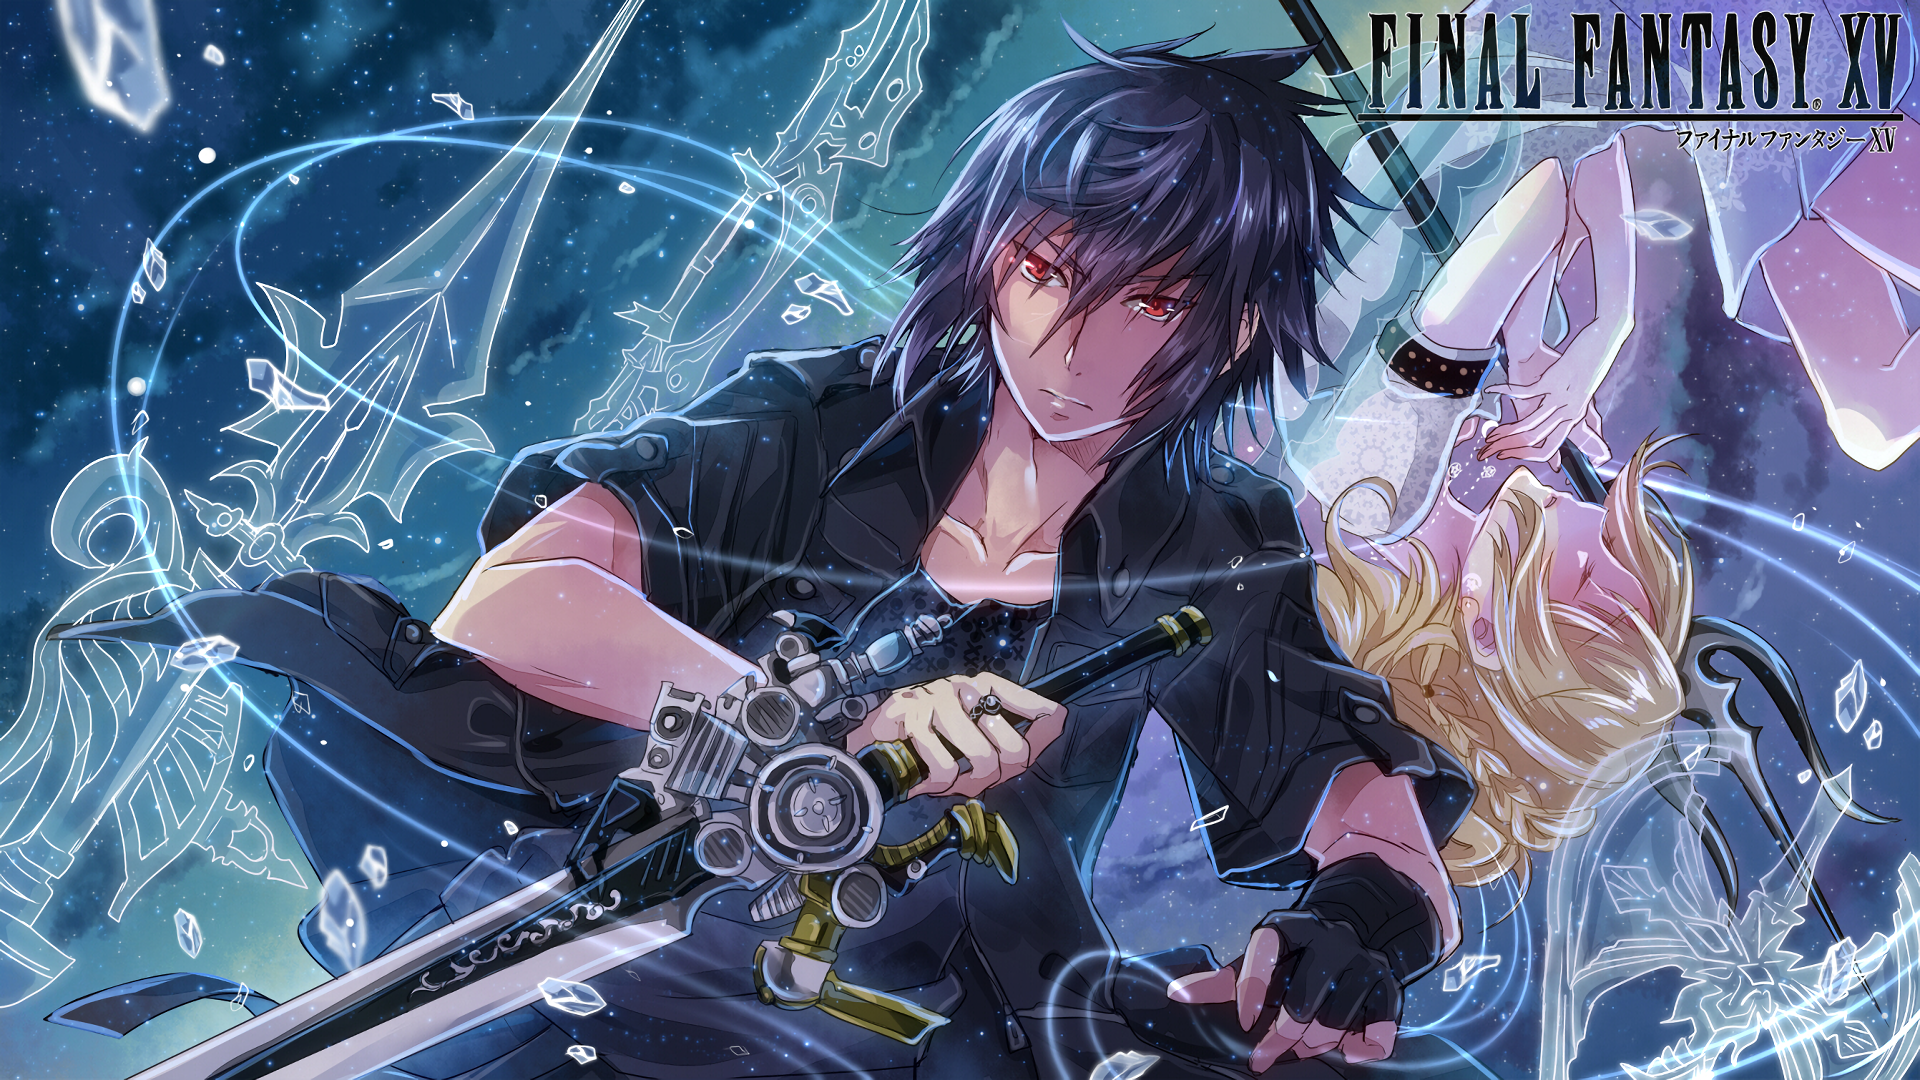 Final Fantasy Xv Wallpapers In Ultra Hd: Final Fantasy XV HD Wallpaper